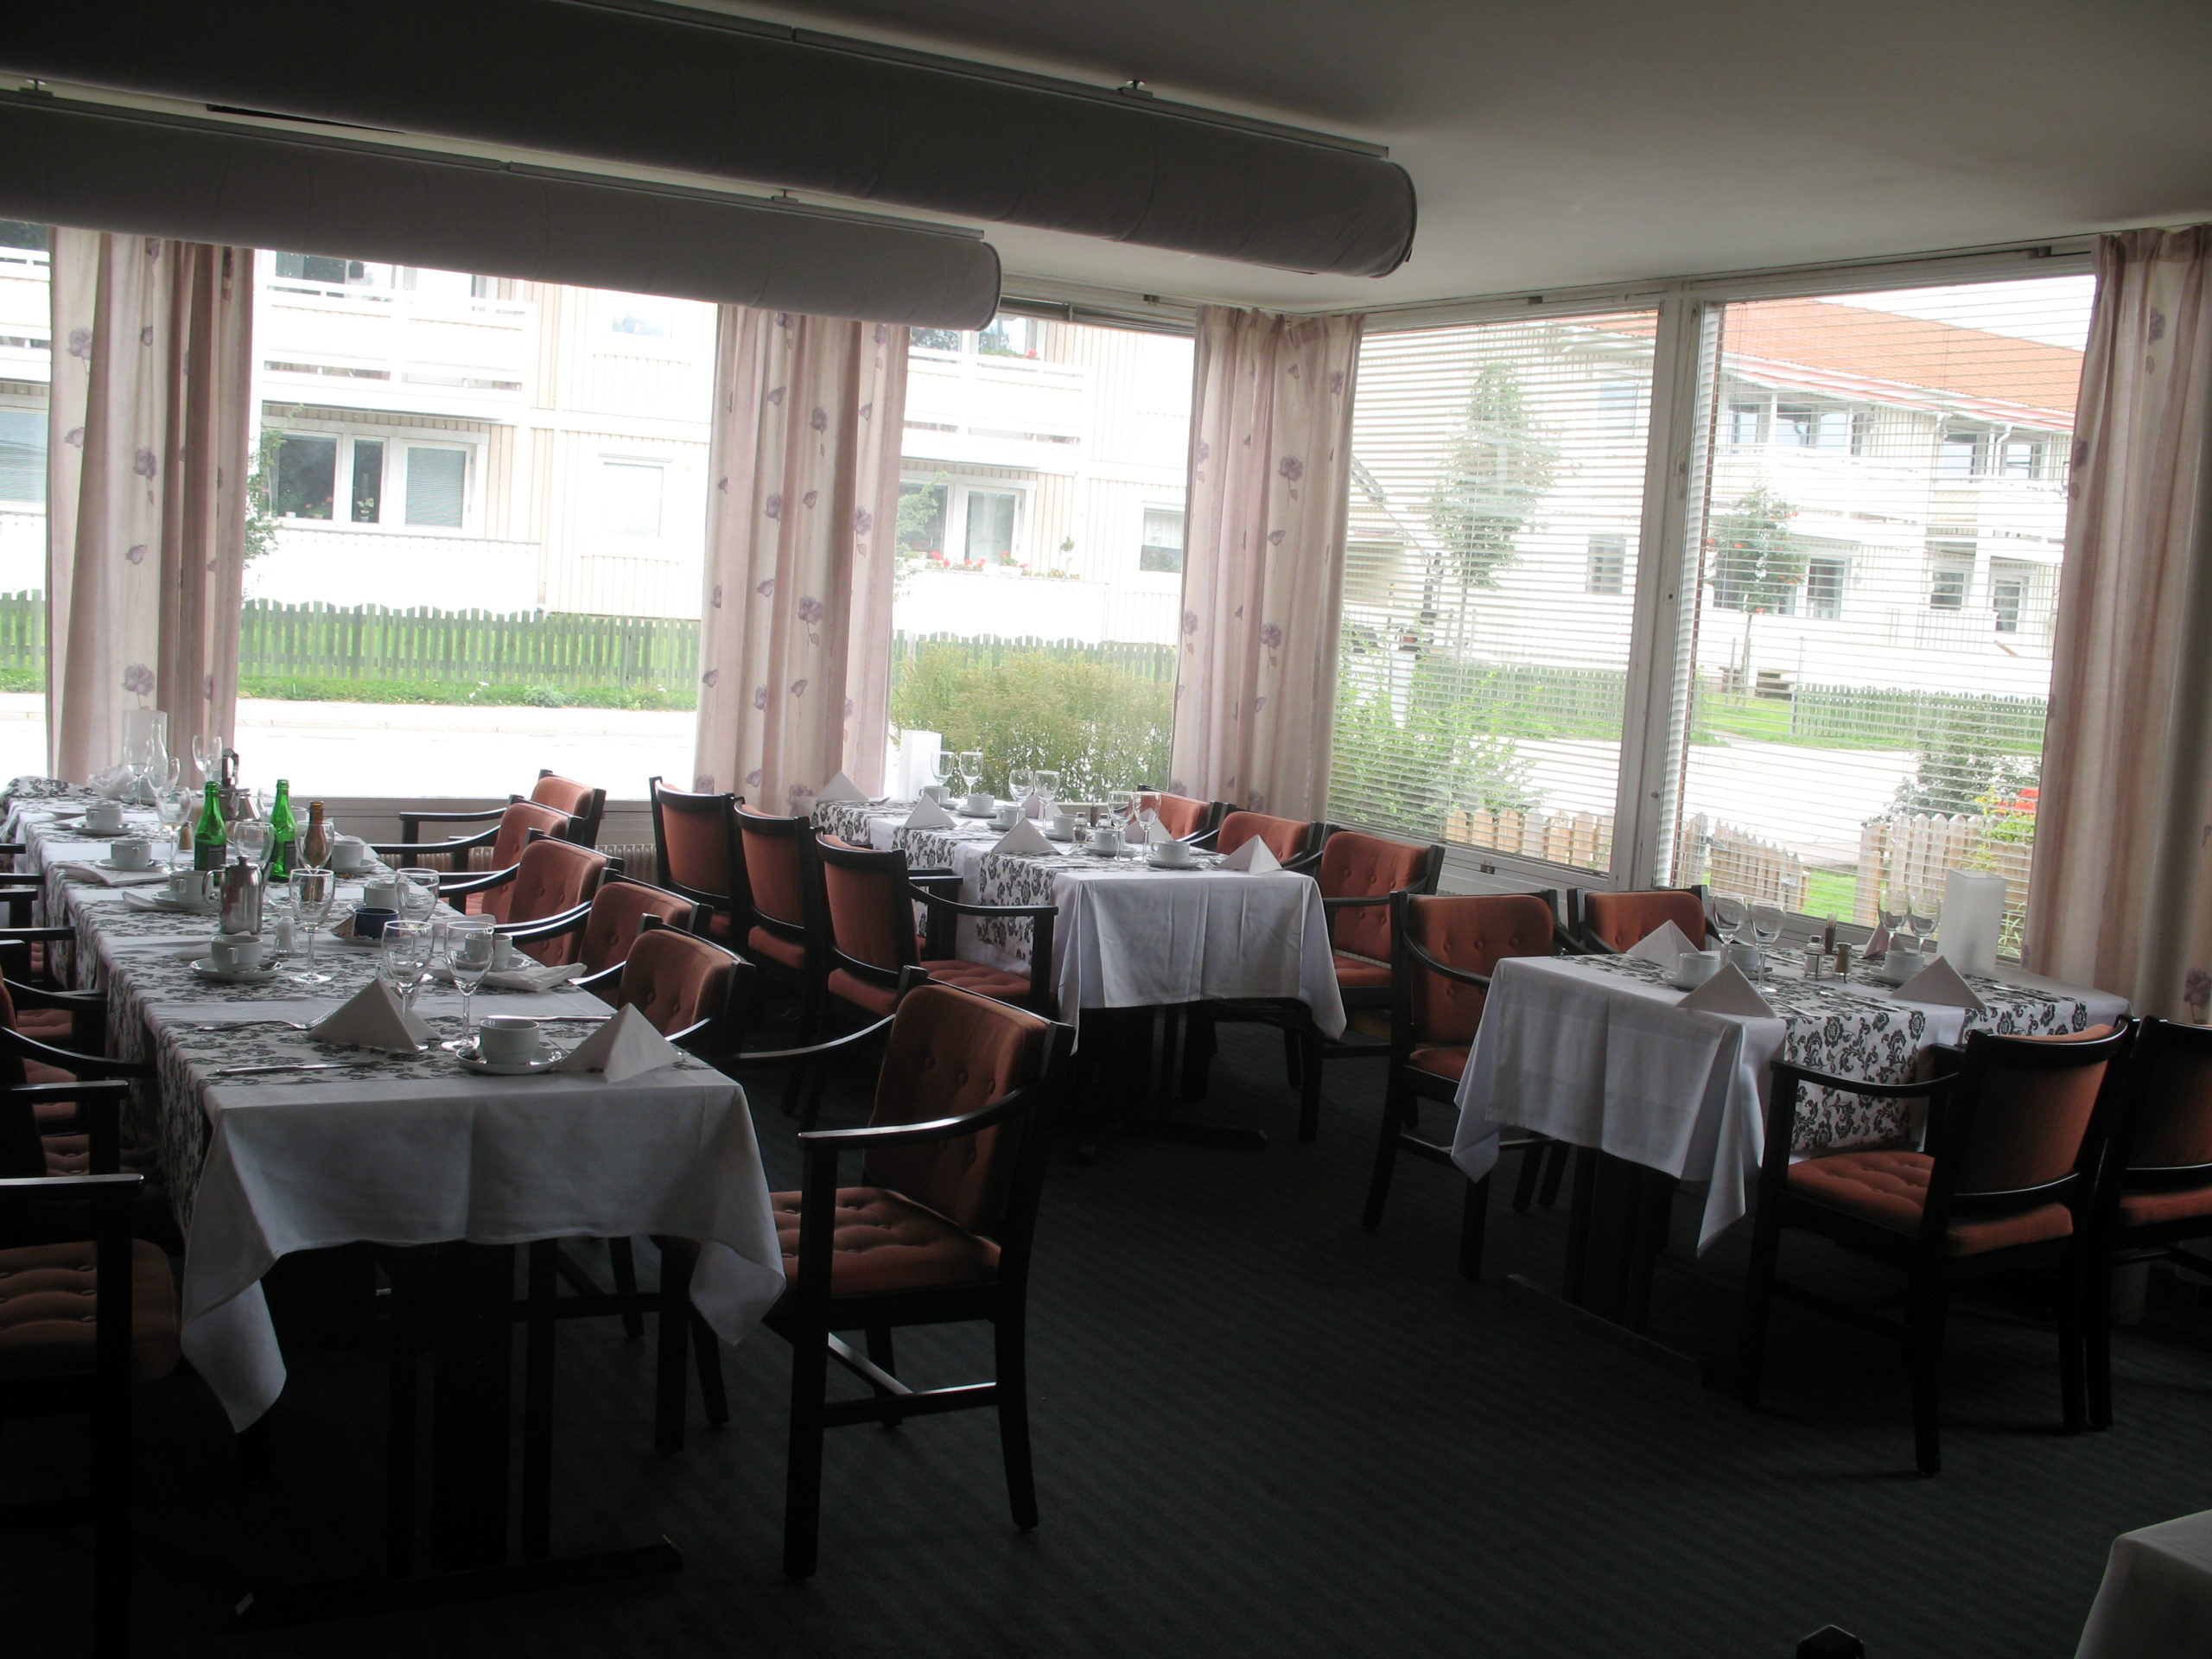 HotellDacke Matsal scaled